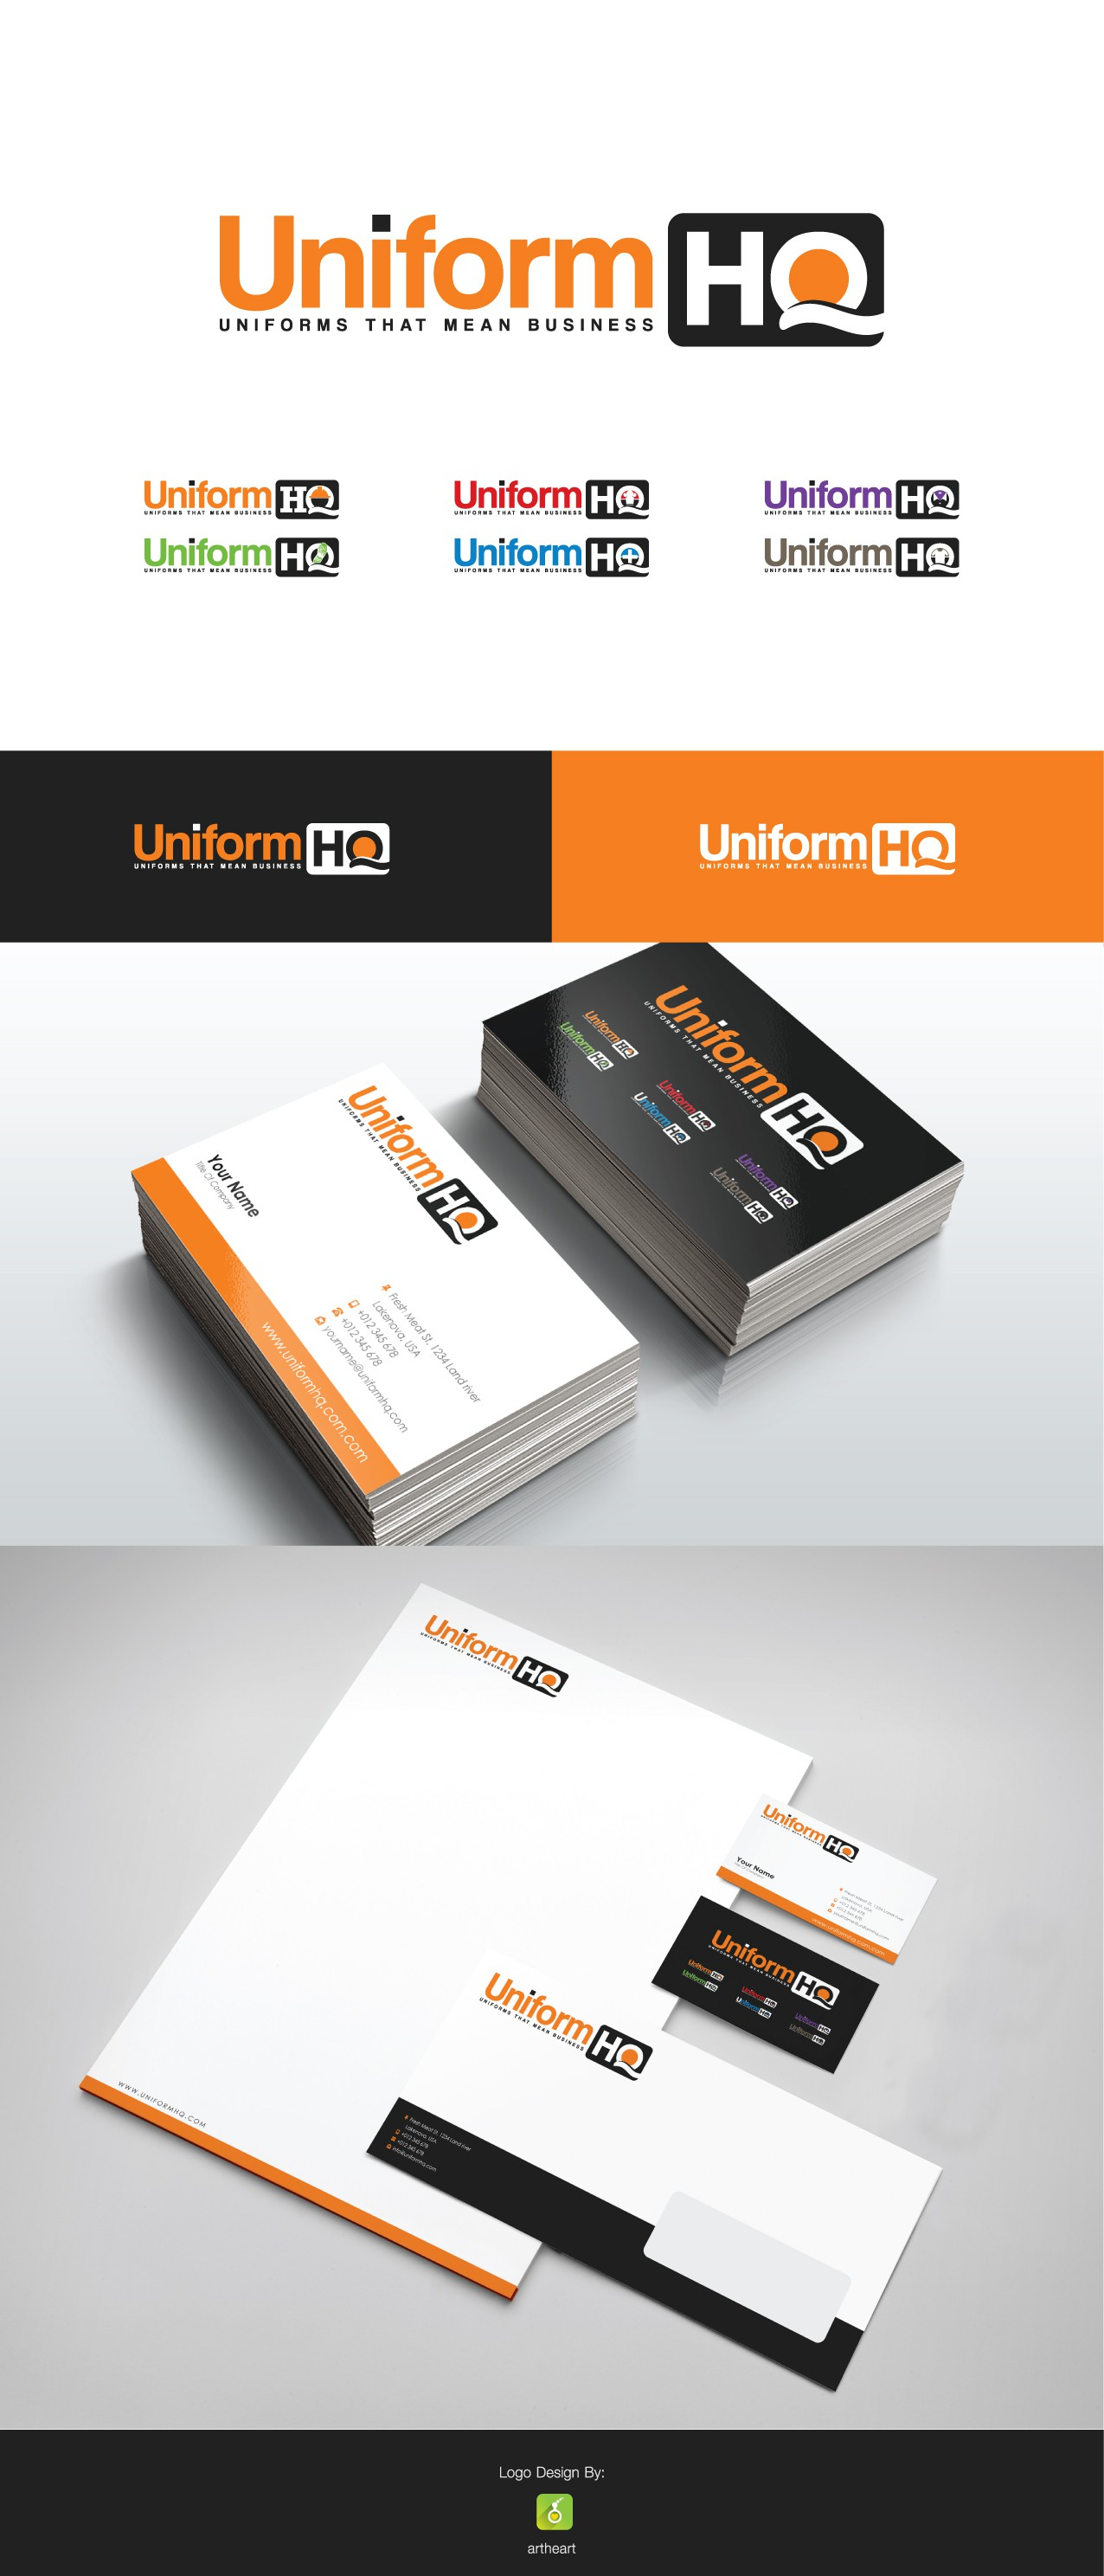 Create a logo for a uniform and workwear retailer